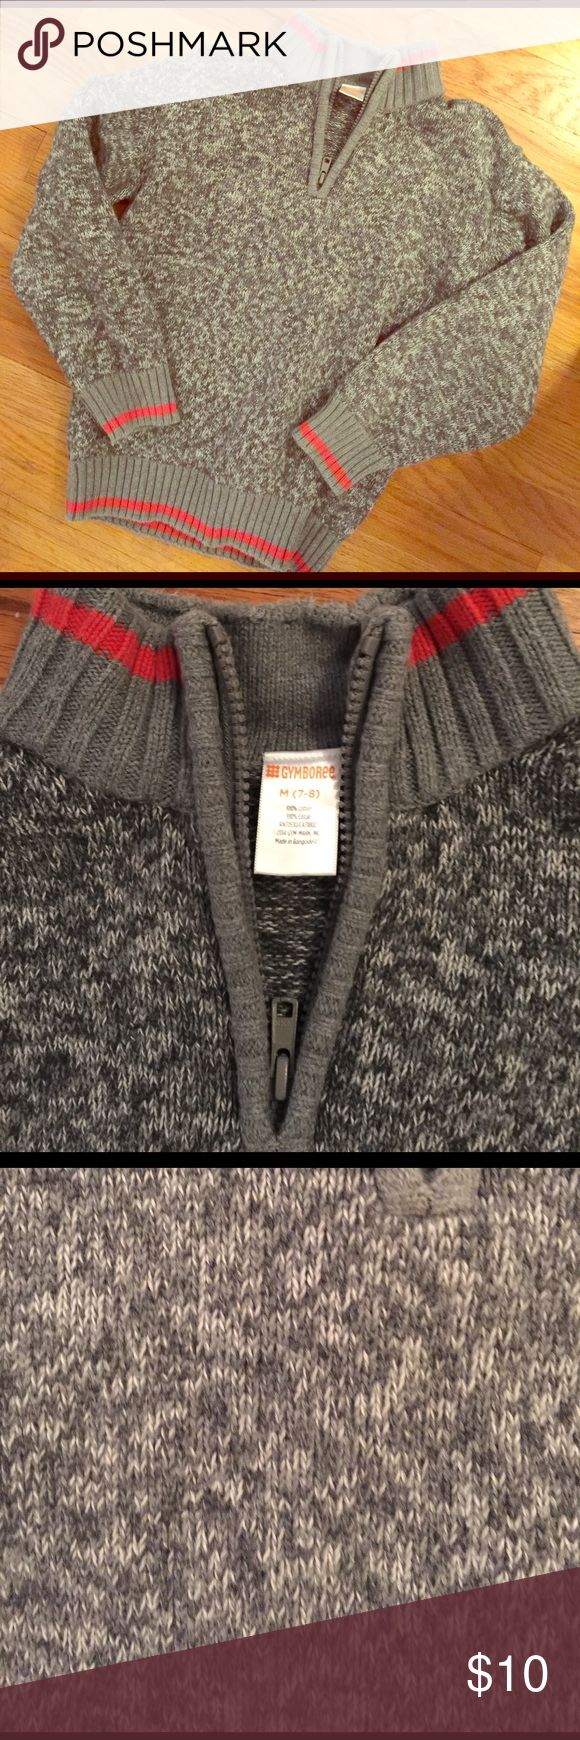 Boys 7/8 heather gray cotton sweater Boys 7/8 Cotton sweater. Heather gray and red trim. Awesome for school photos. Easy to wear and wash. Clean and gently used. No years or stains or snags. Gymboree Shirts & Tops Sweaters